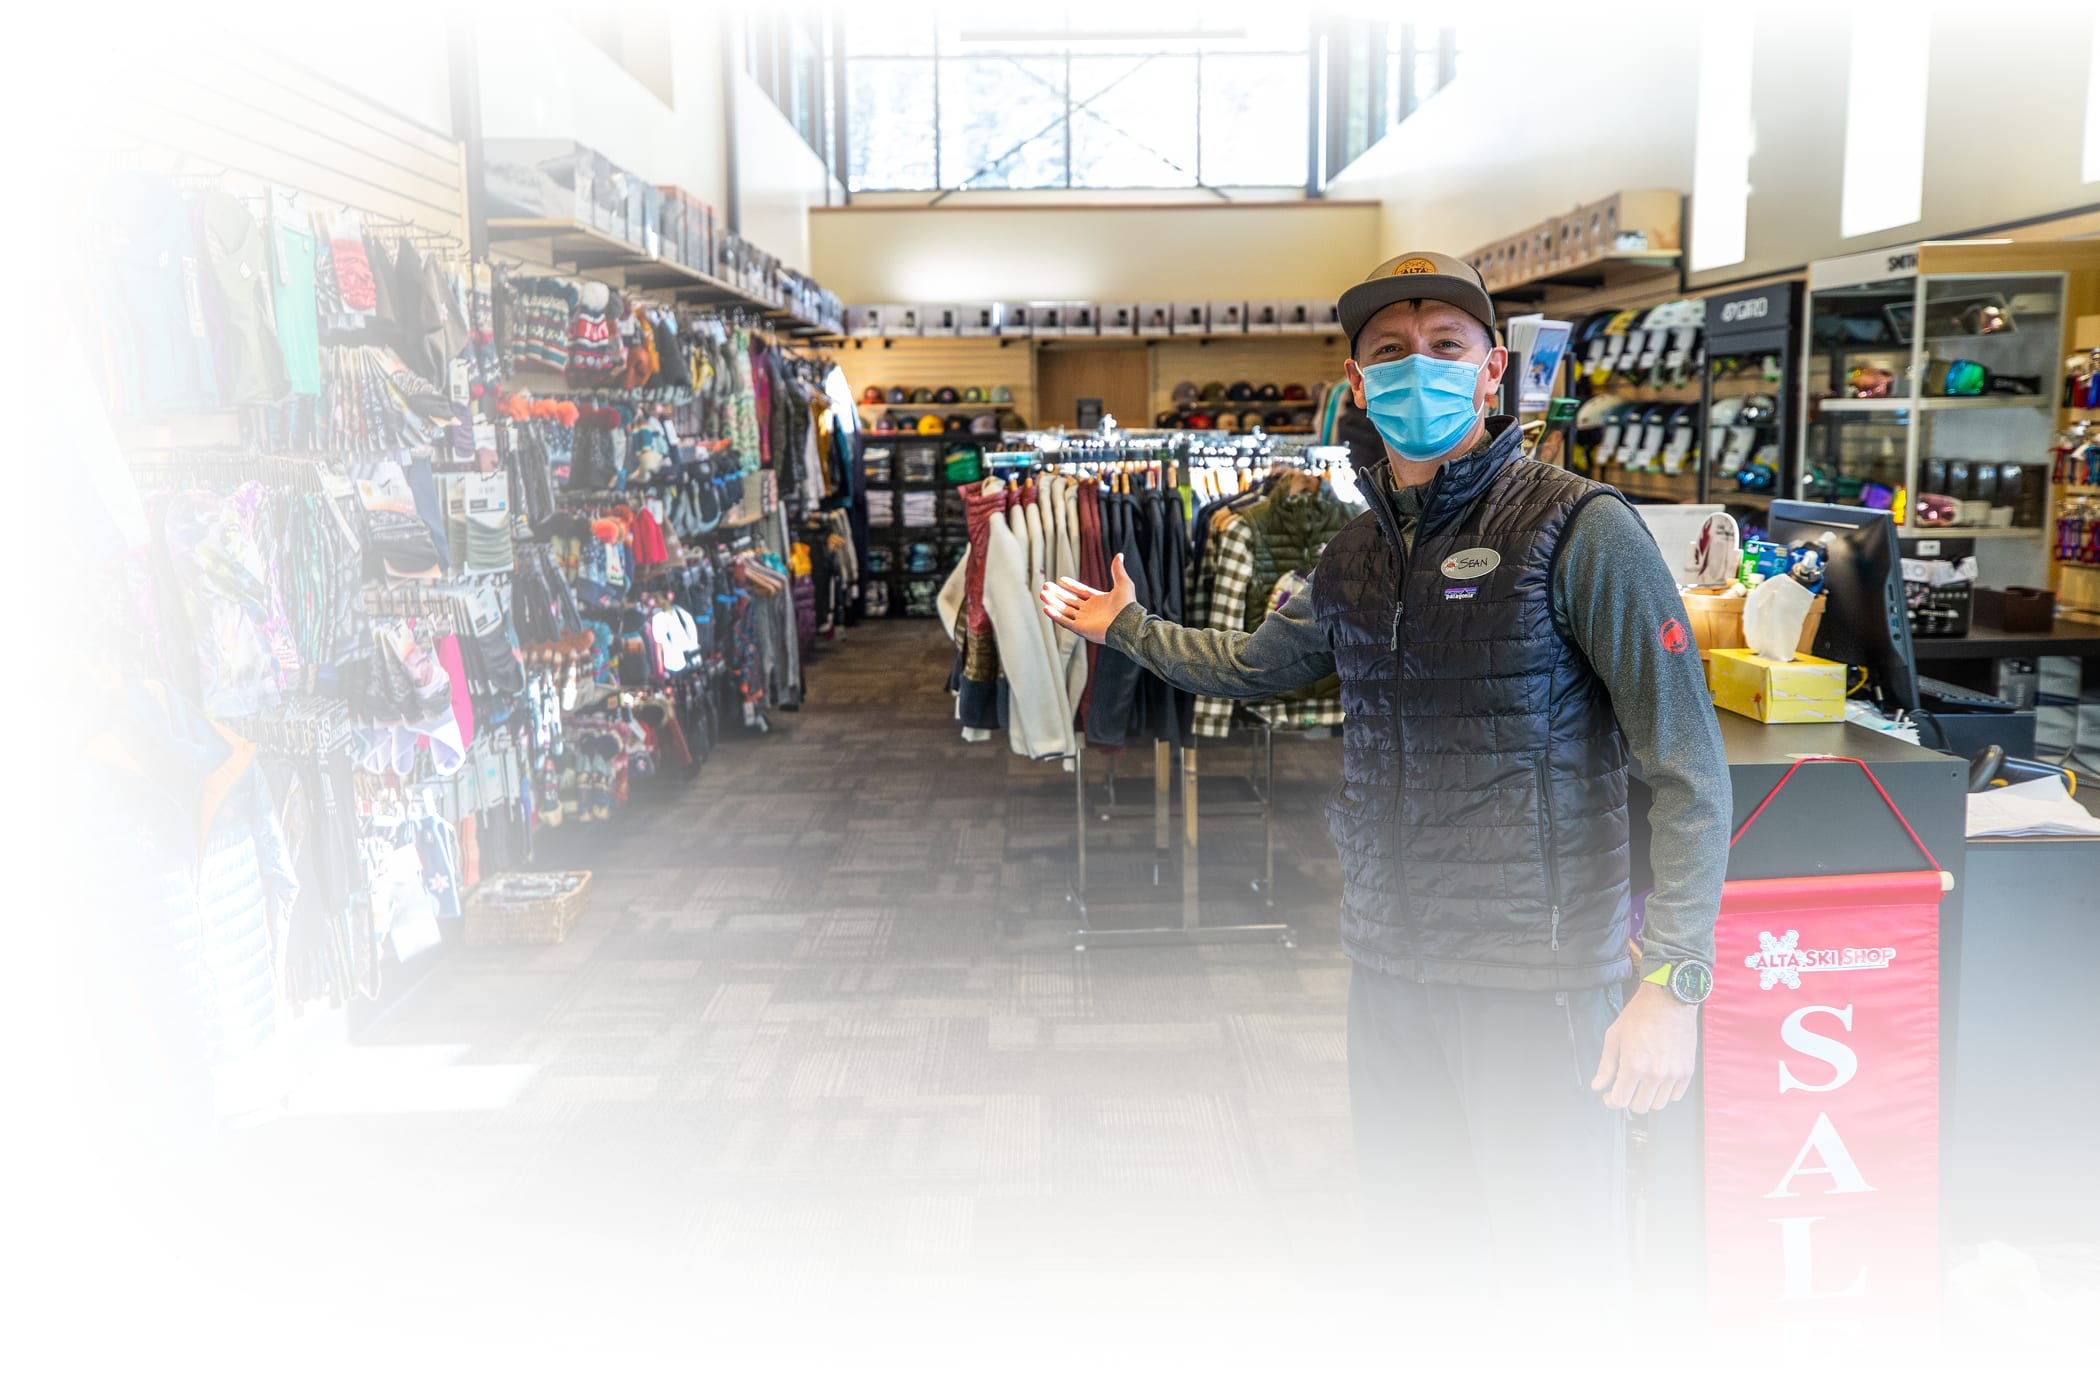 The new Alta Ski Shop at the renovated Alf's Restaurant is now open